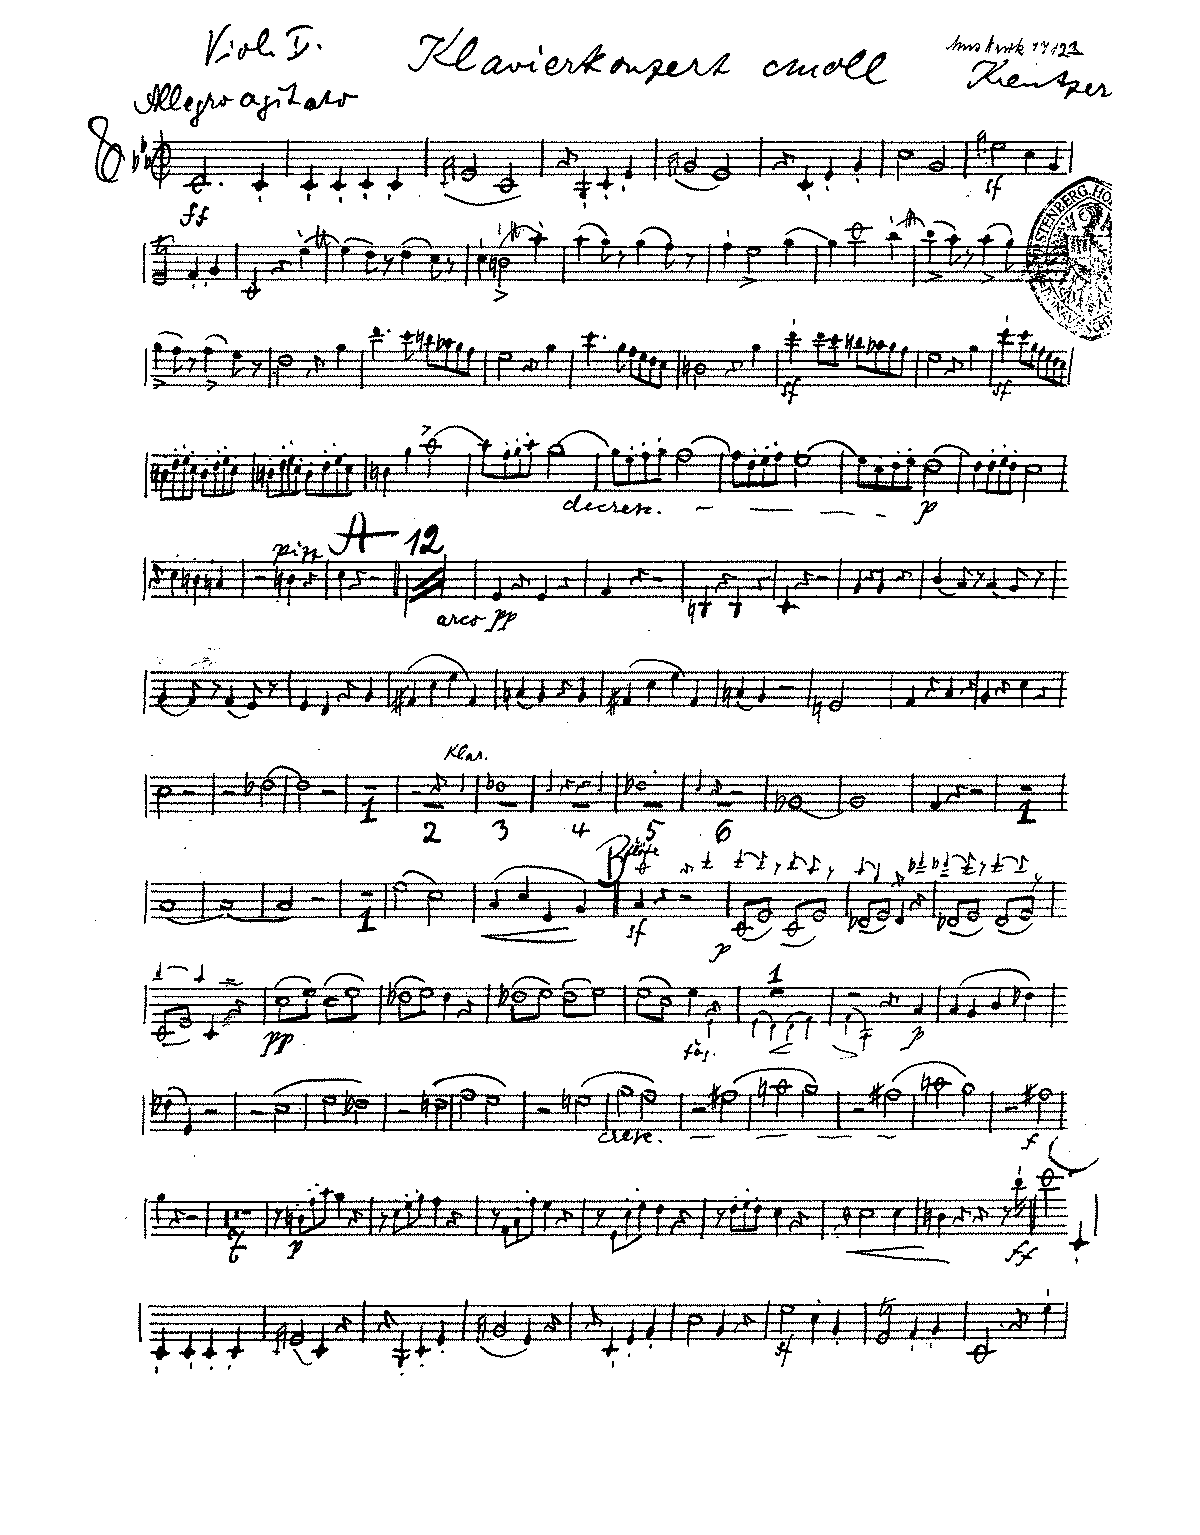 PMLP721934-CKreutzer Piano Concerto No.2, Op.50 ms strings monochrome.pdf